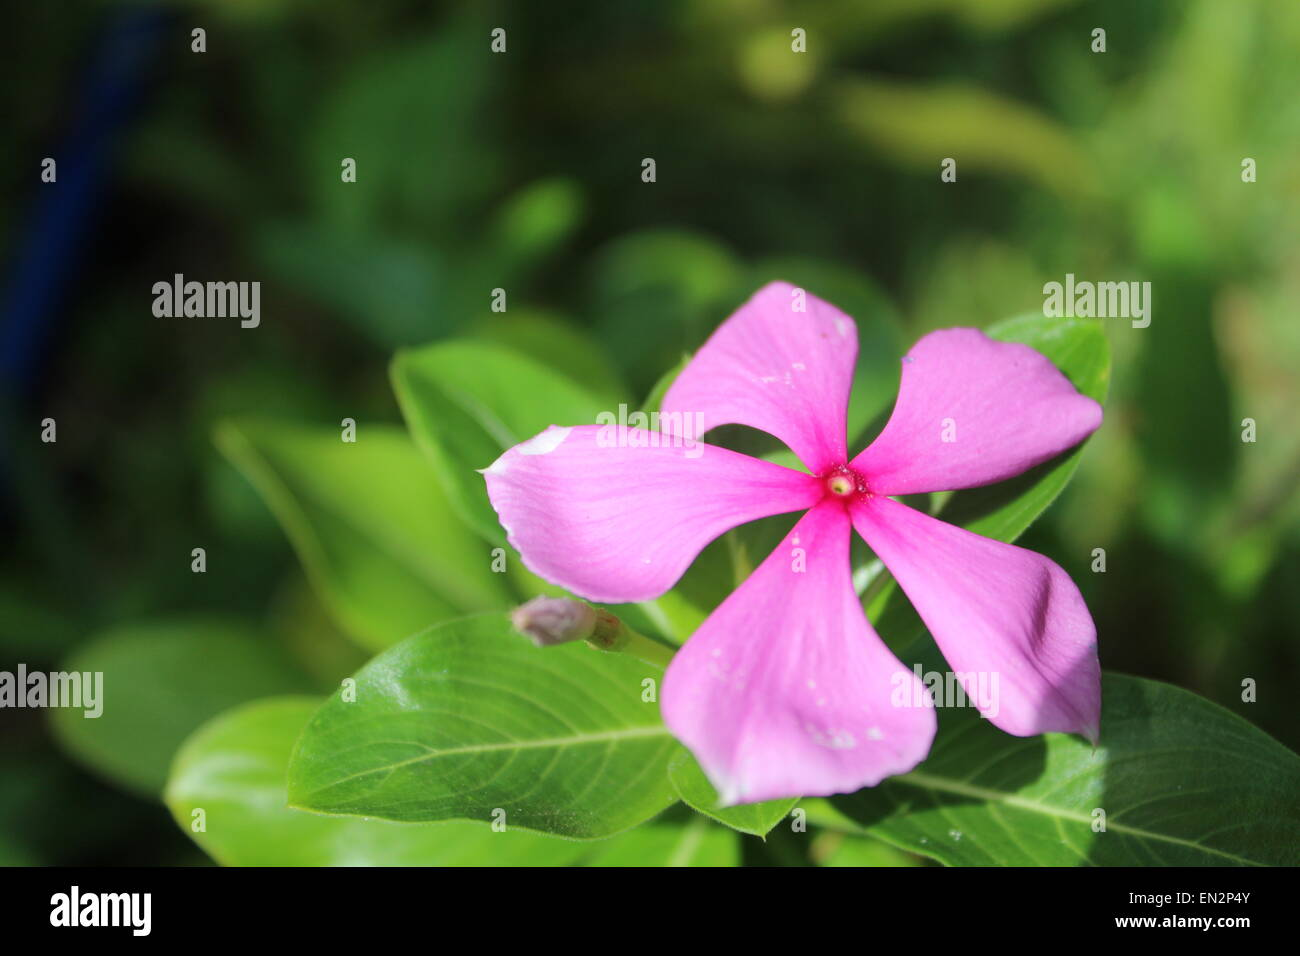 pink-purple Flower, Venezuela. America. Stock Photo